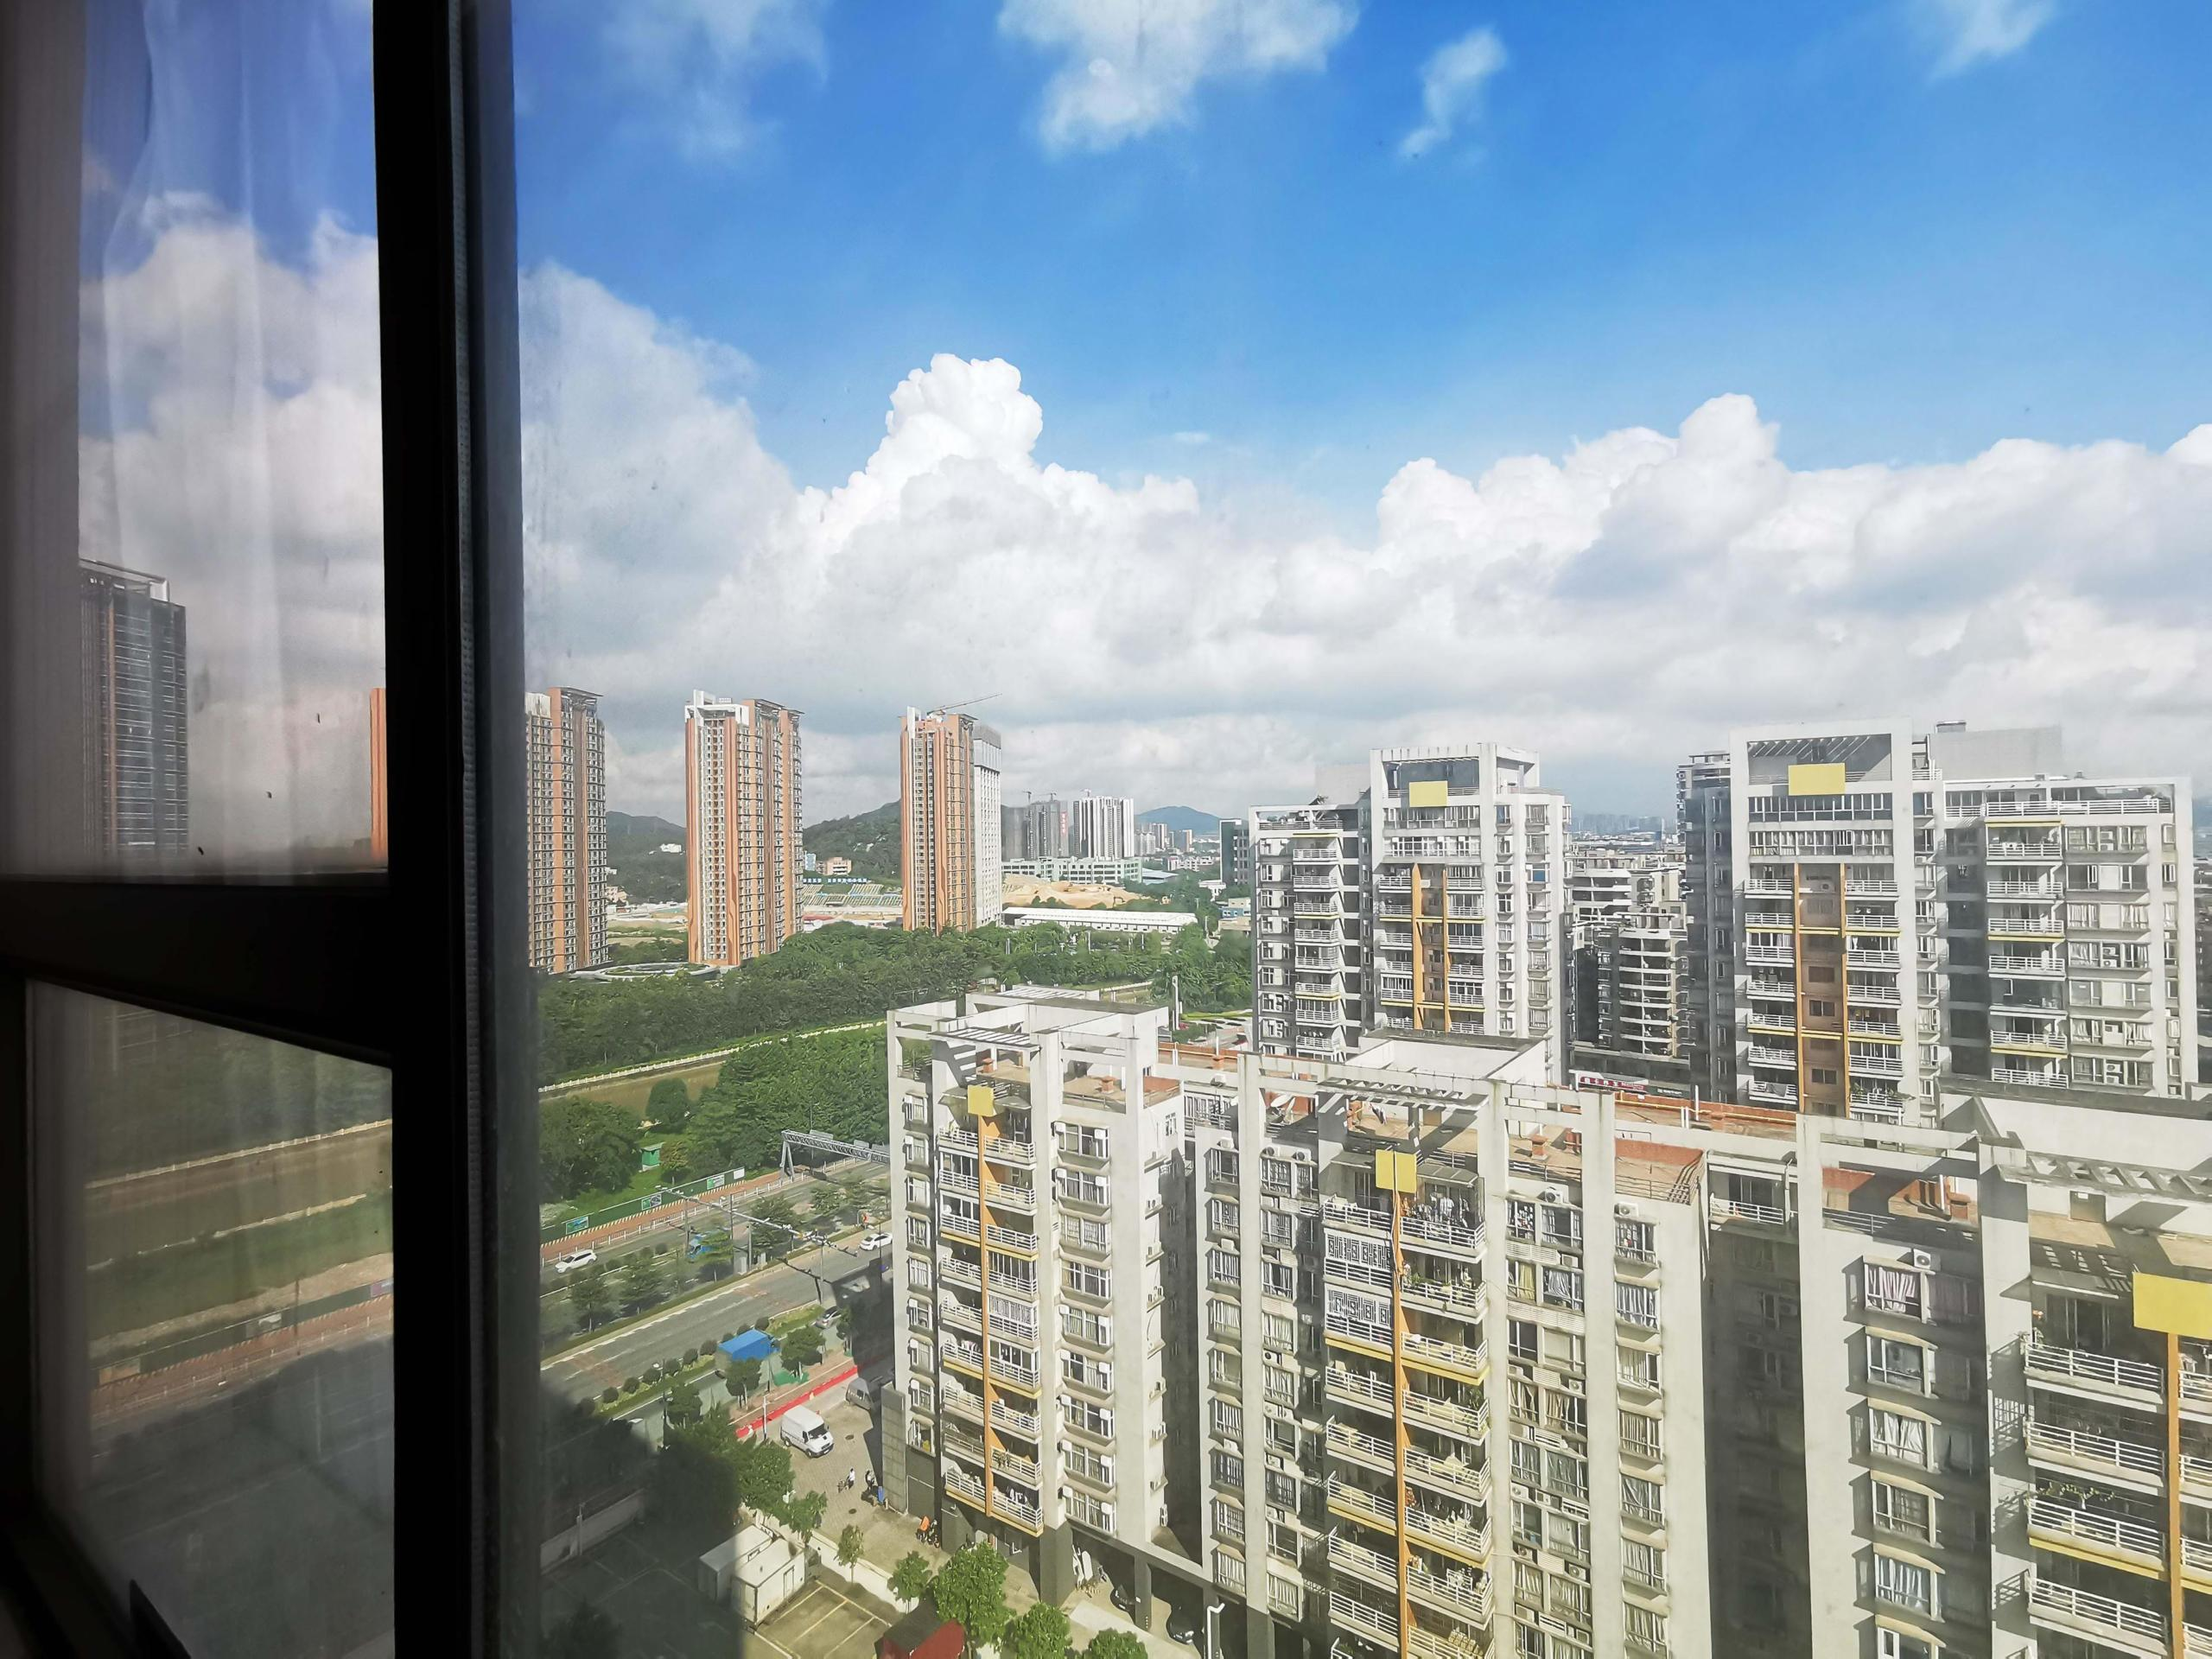 """After the flight landed in Guangzhou, Zifeng was sent to the Huangpu District for quarantine. """"Wei-ye-na hotel put me in a big room at the end of a corridor on the 14th floor, lucky for me my room had a sunny window,"""" she said. Image credit: Zifeng Zhang"""